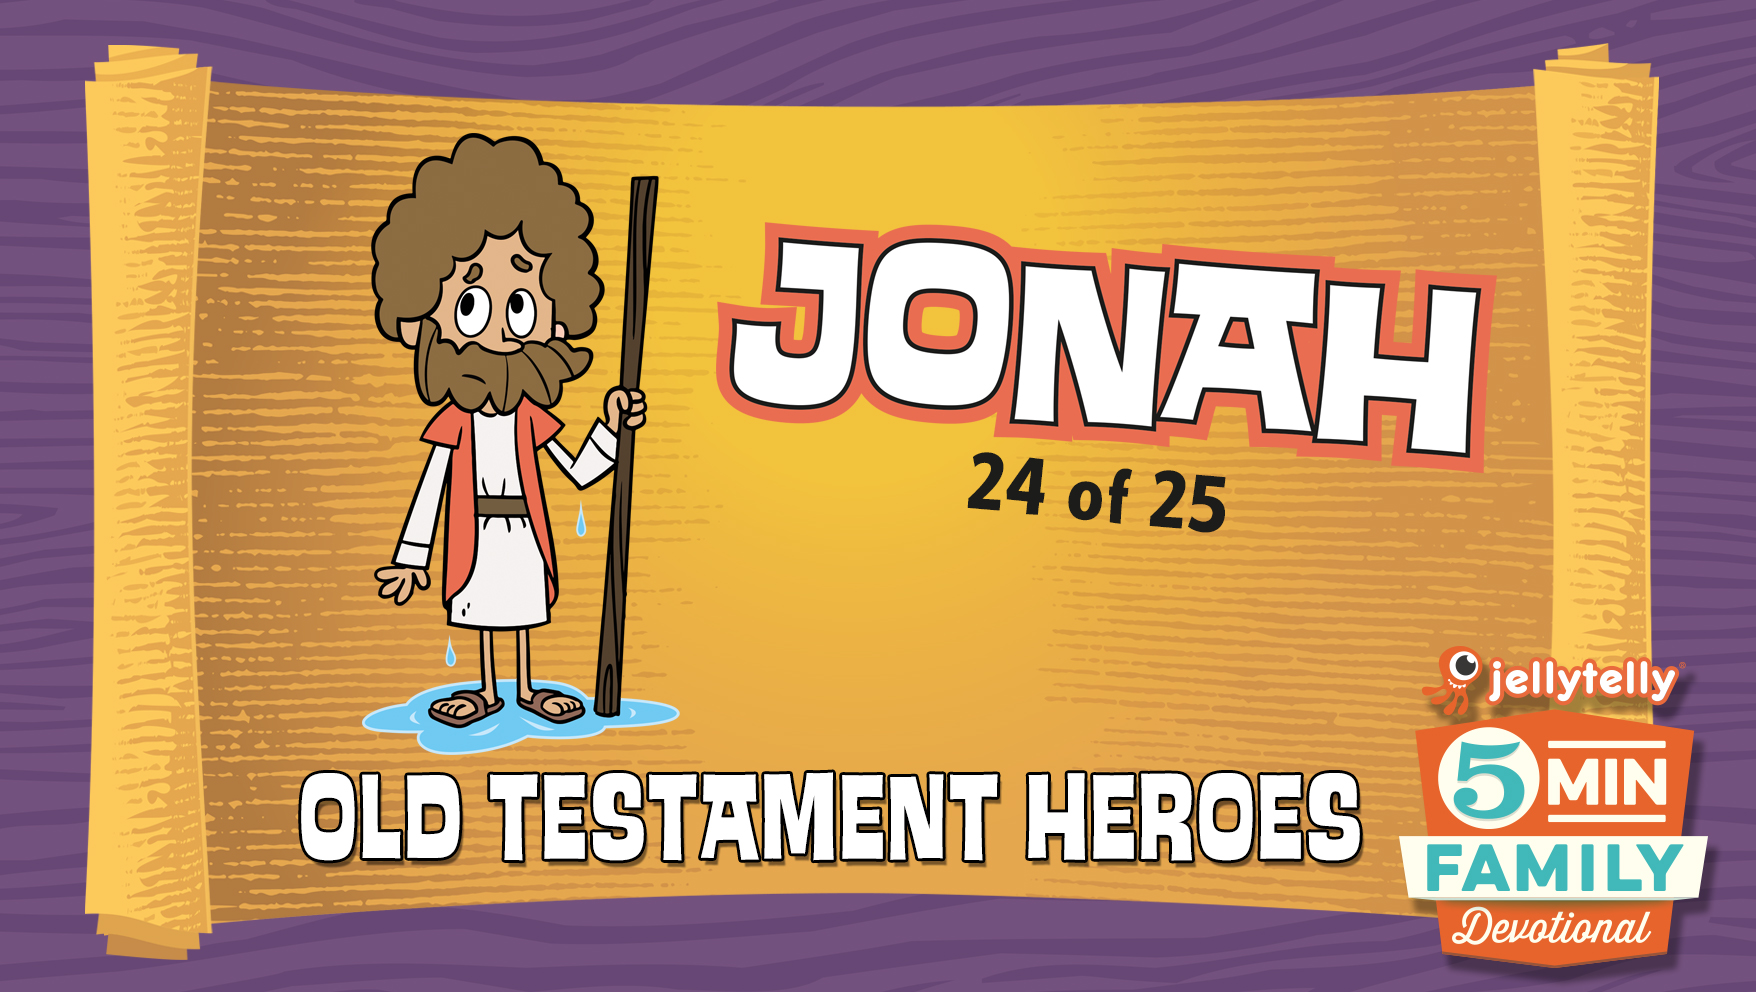 Jonah: Old Testament Heroes - 5 Minute Family Devotional